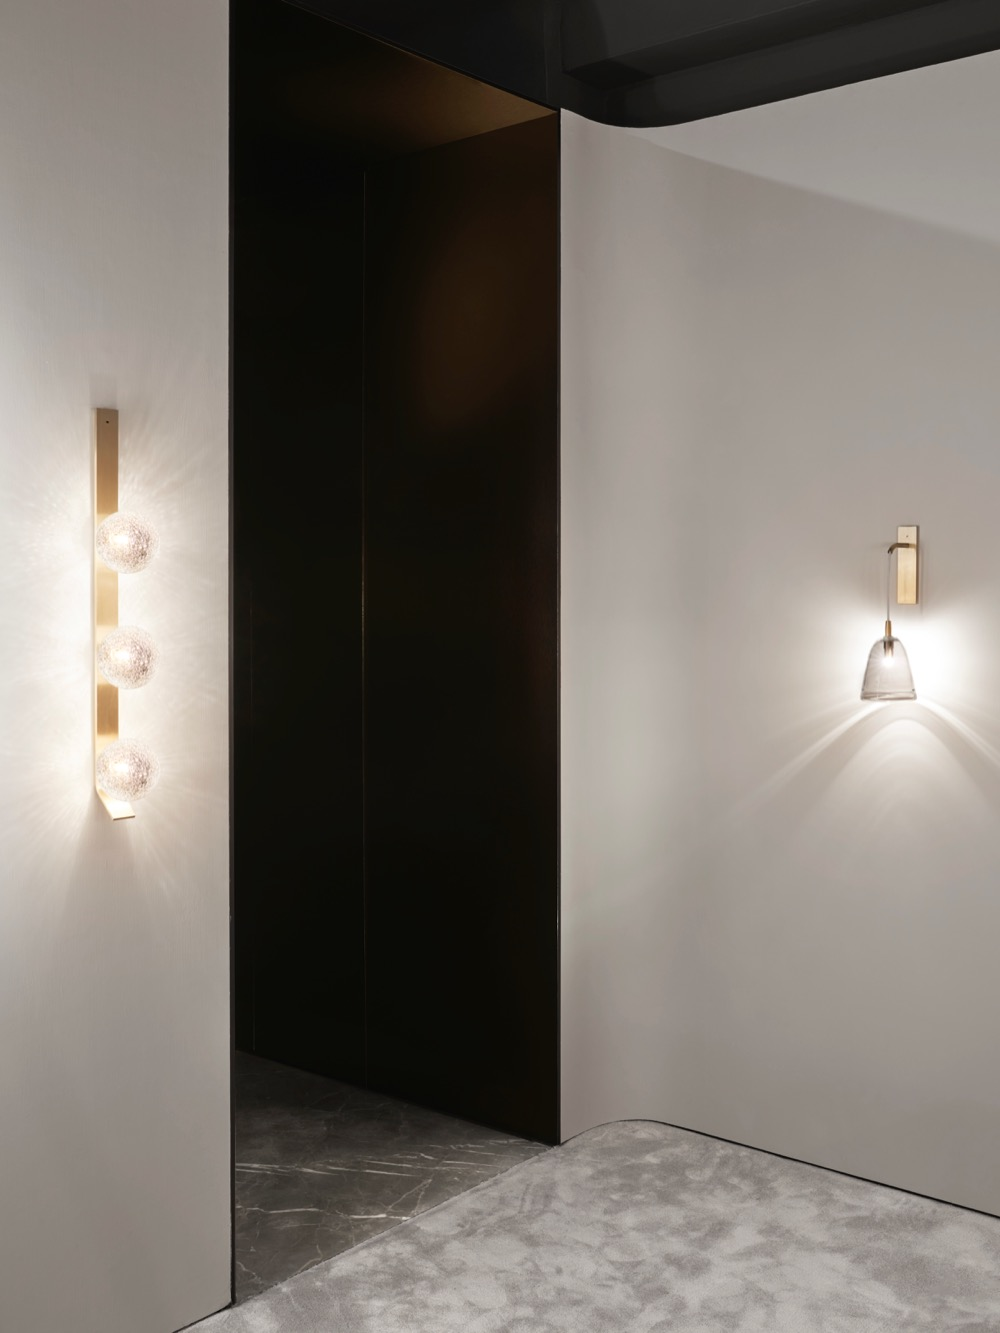 The Articolo New York showroom showing the Fizi Triple ball wall sconce and Ici wall sconce in glass (also available in porcelain). Photograph: Brooke Holm.